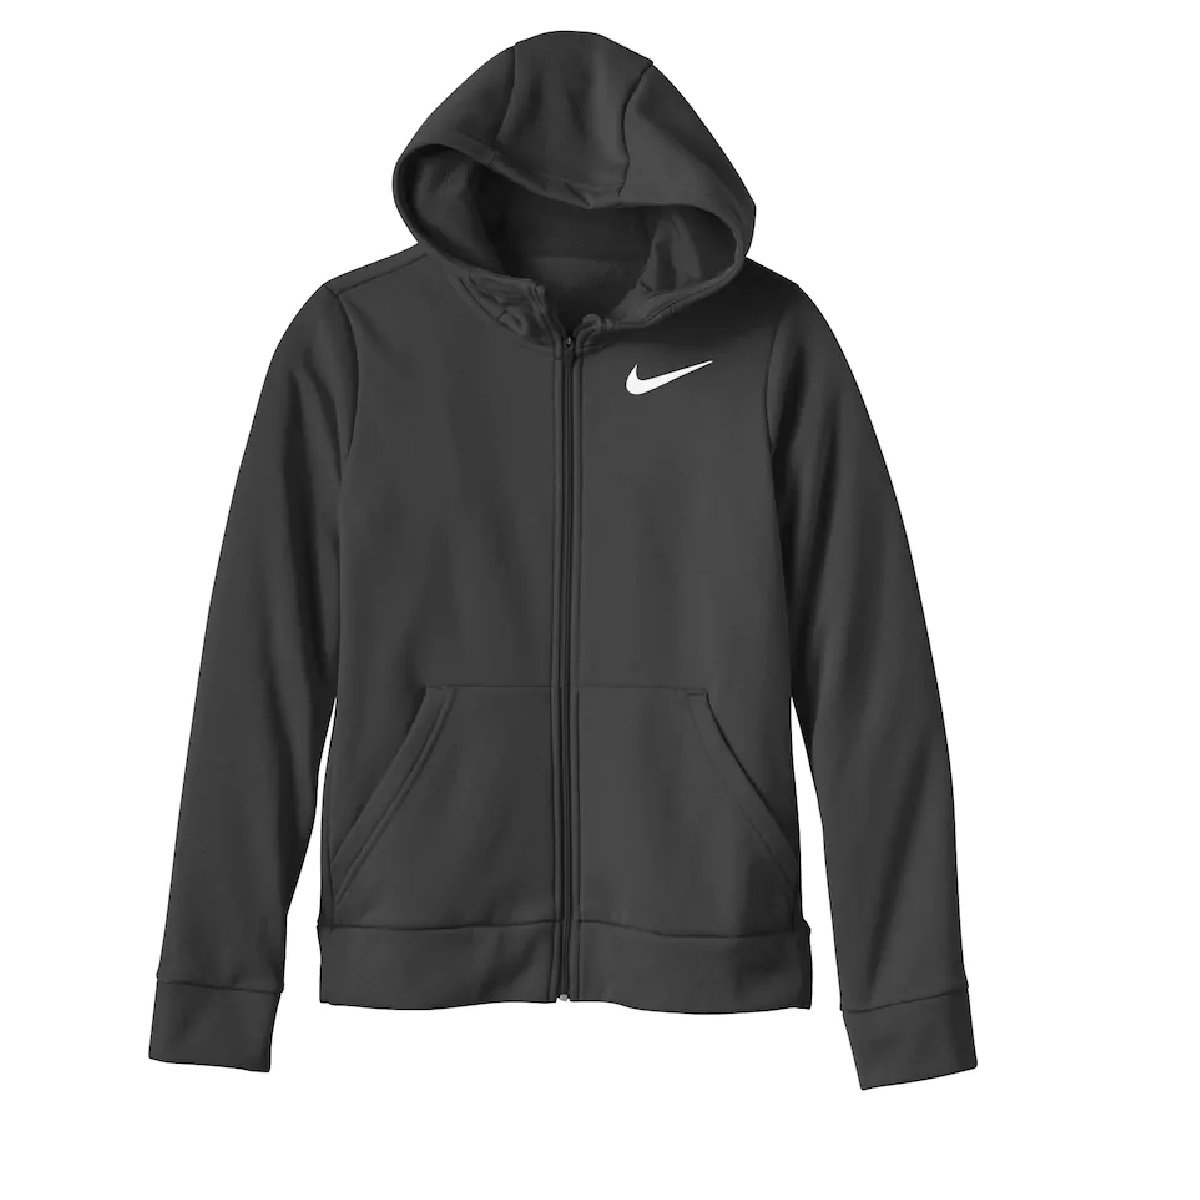 32bf0ed78a19 Amazon.com  NIKE Girls 7-16 Therma Fleece-Lined Training Hoodie  Sports    Outdoors